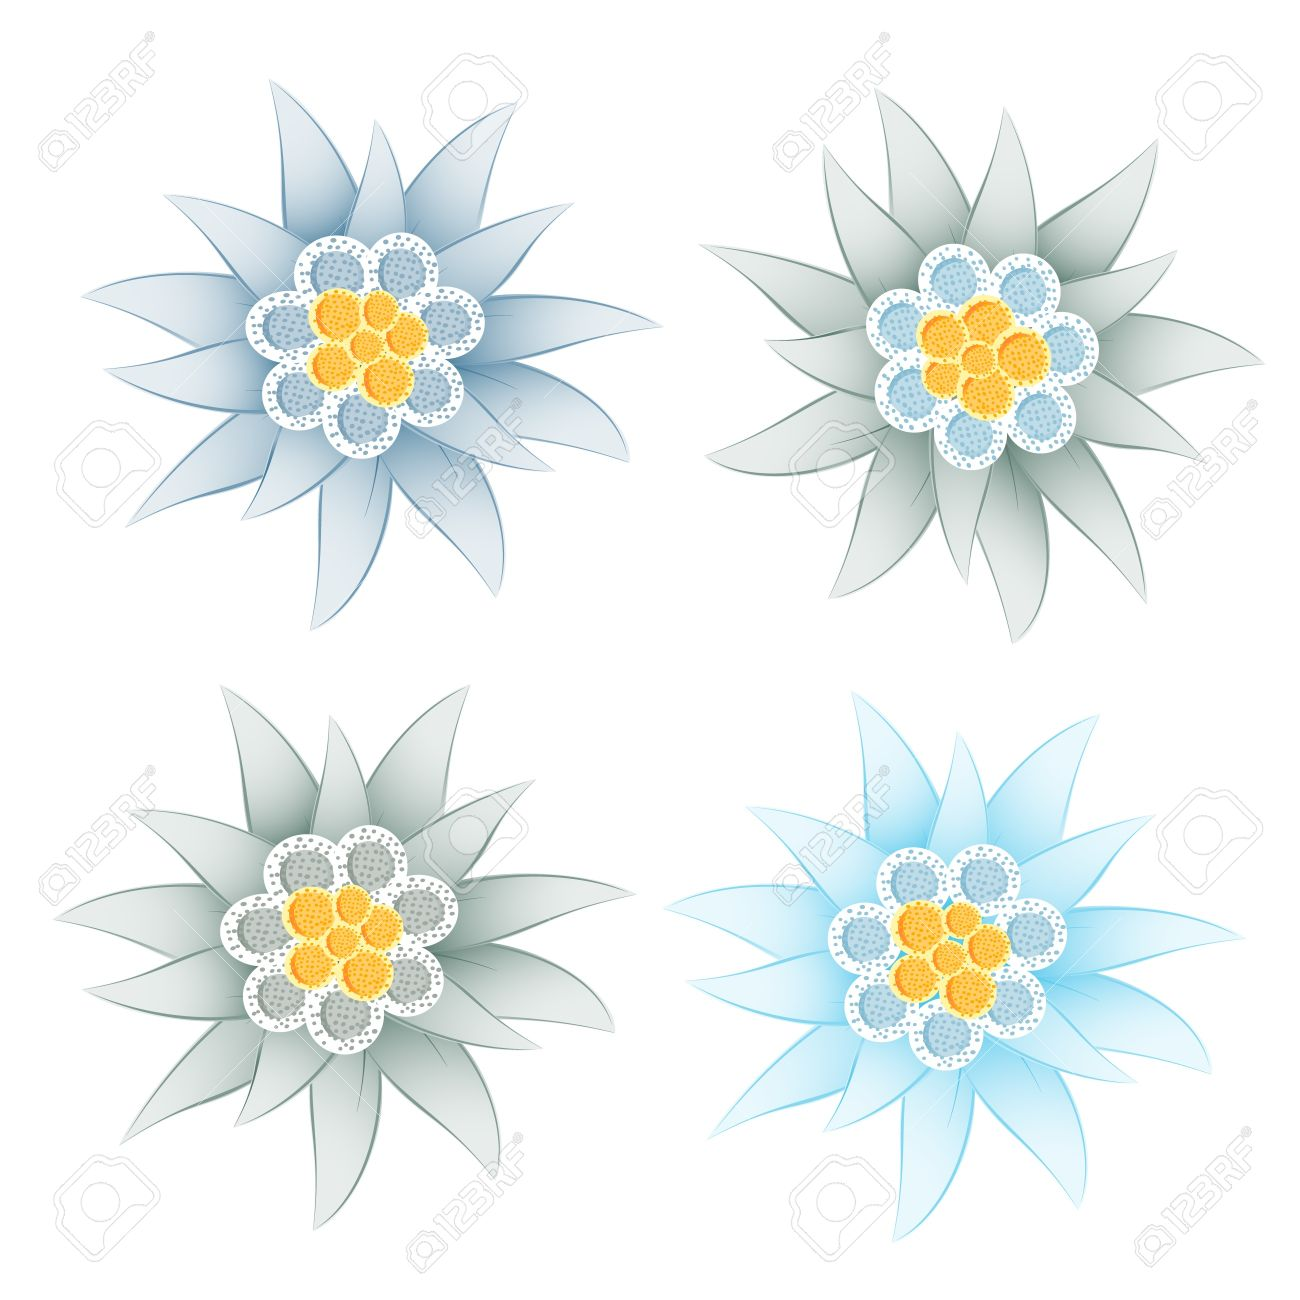 Edelweiss (Leontopodium Alpinum) Royalty Free Cliparts, Vectors.